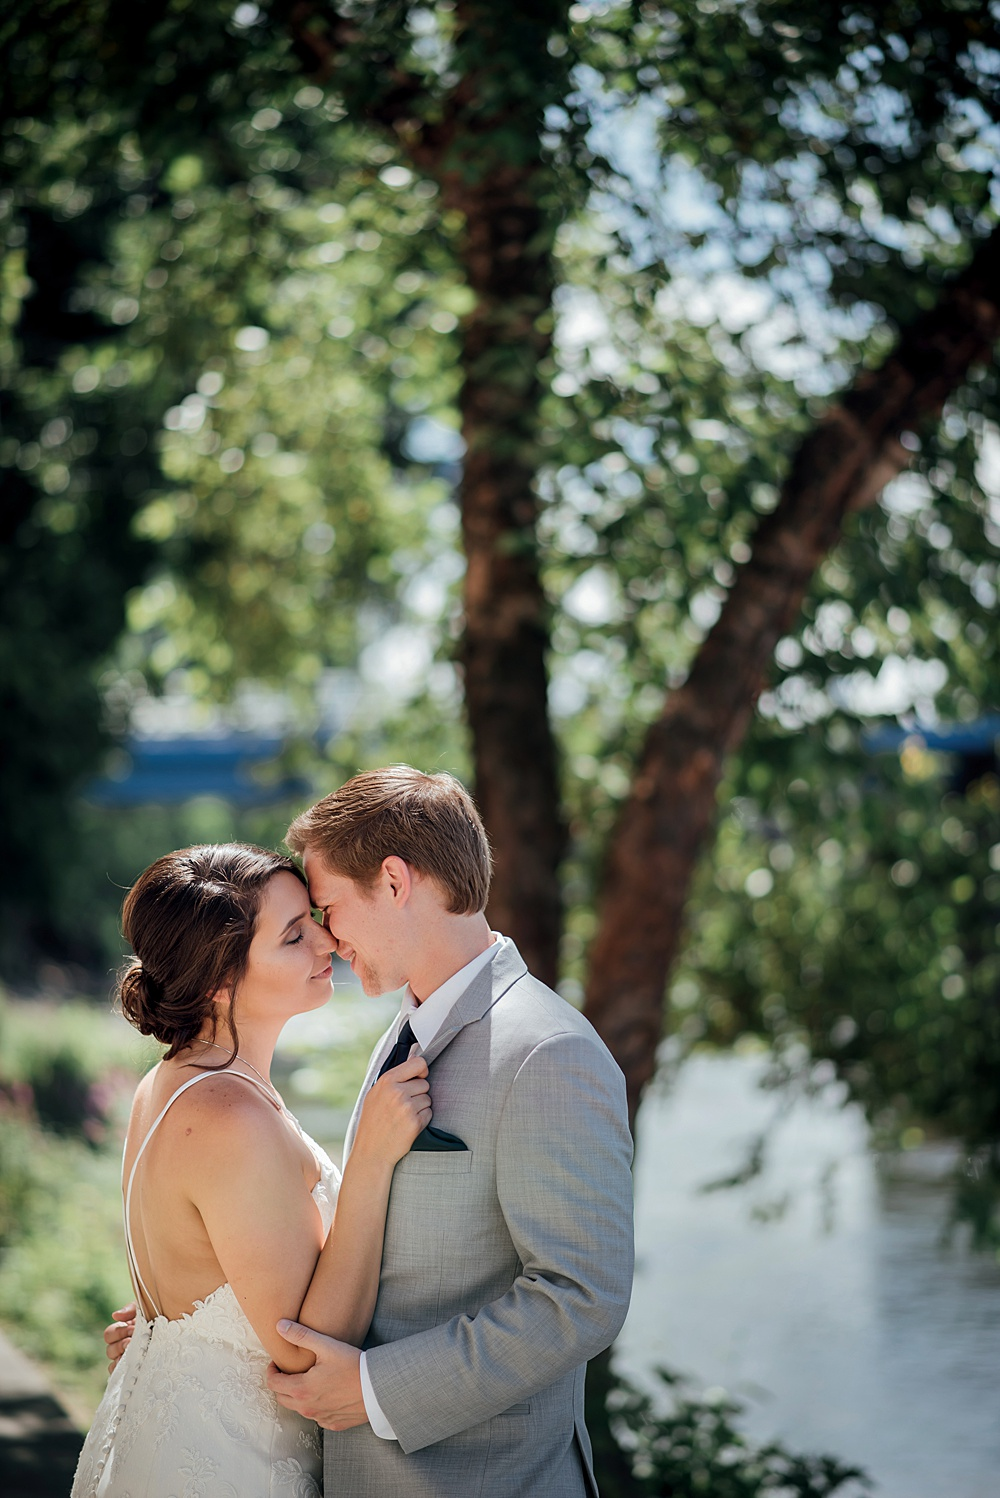 Bissell_Treehouse_Wedding_photography046.jpg